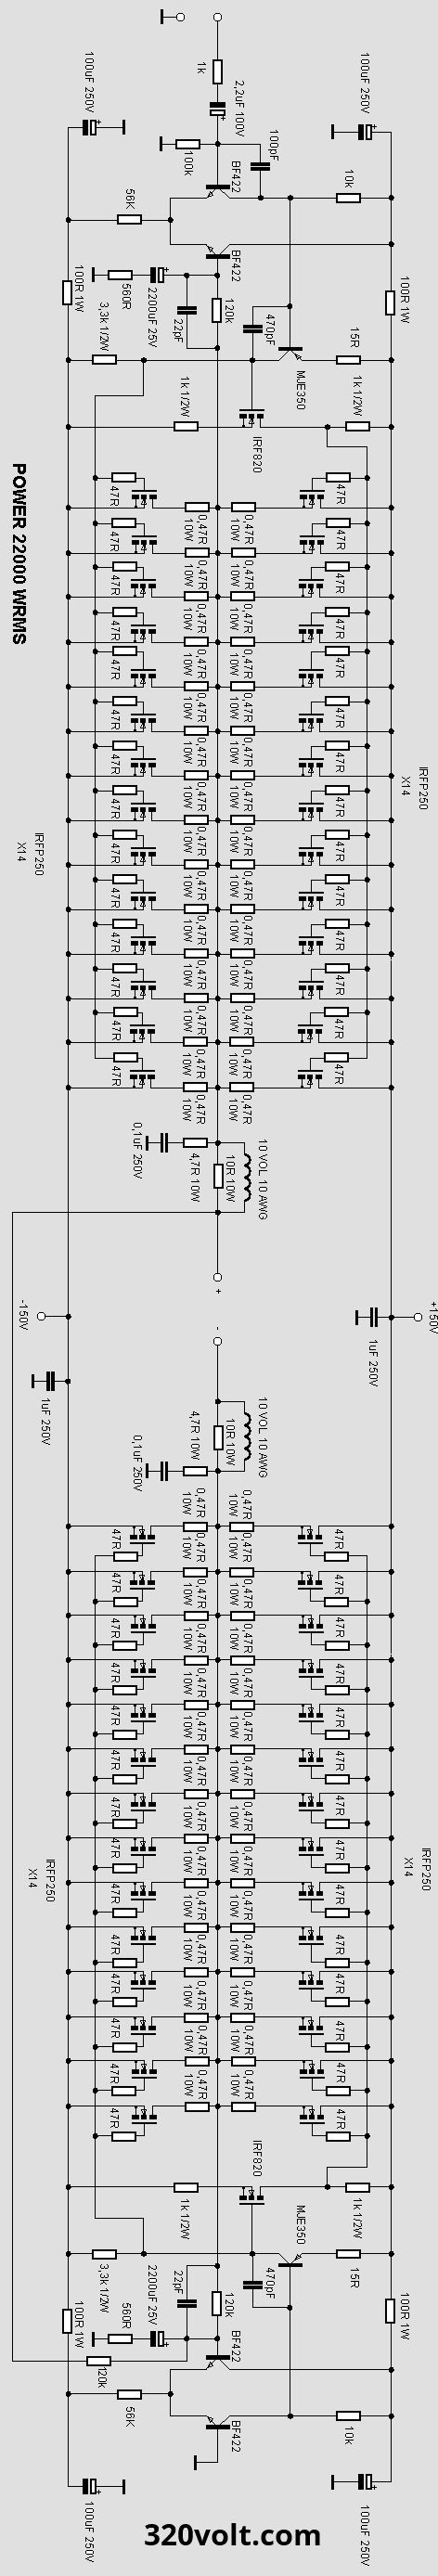 medium resolution of 1000 watt amplifier circuit diagram